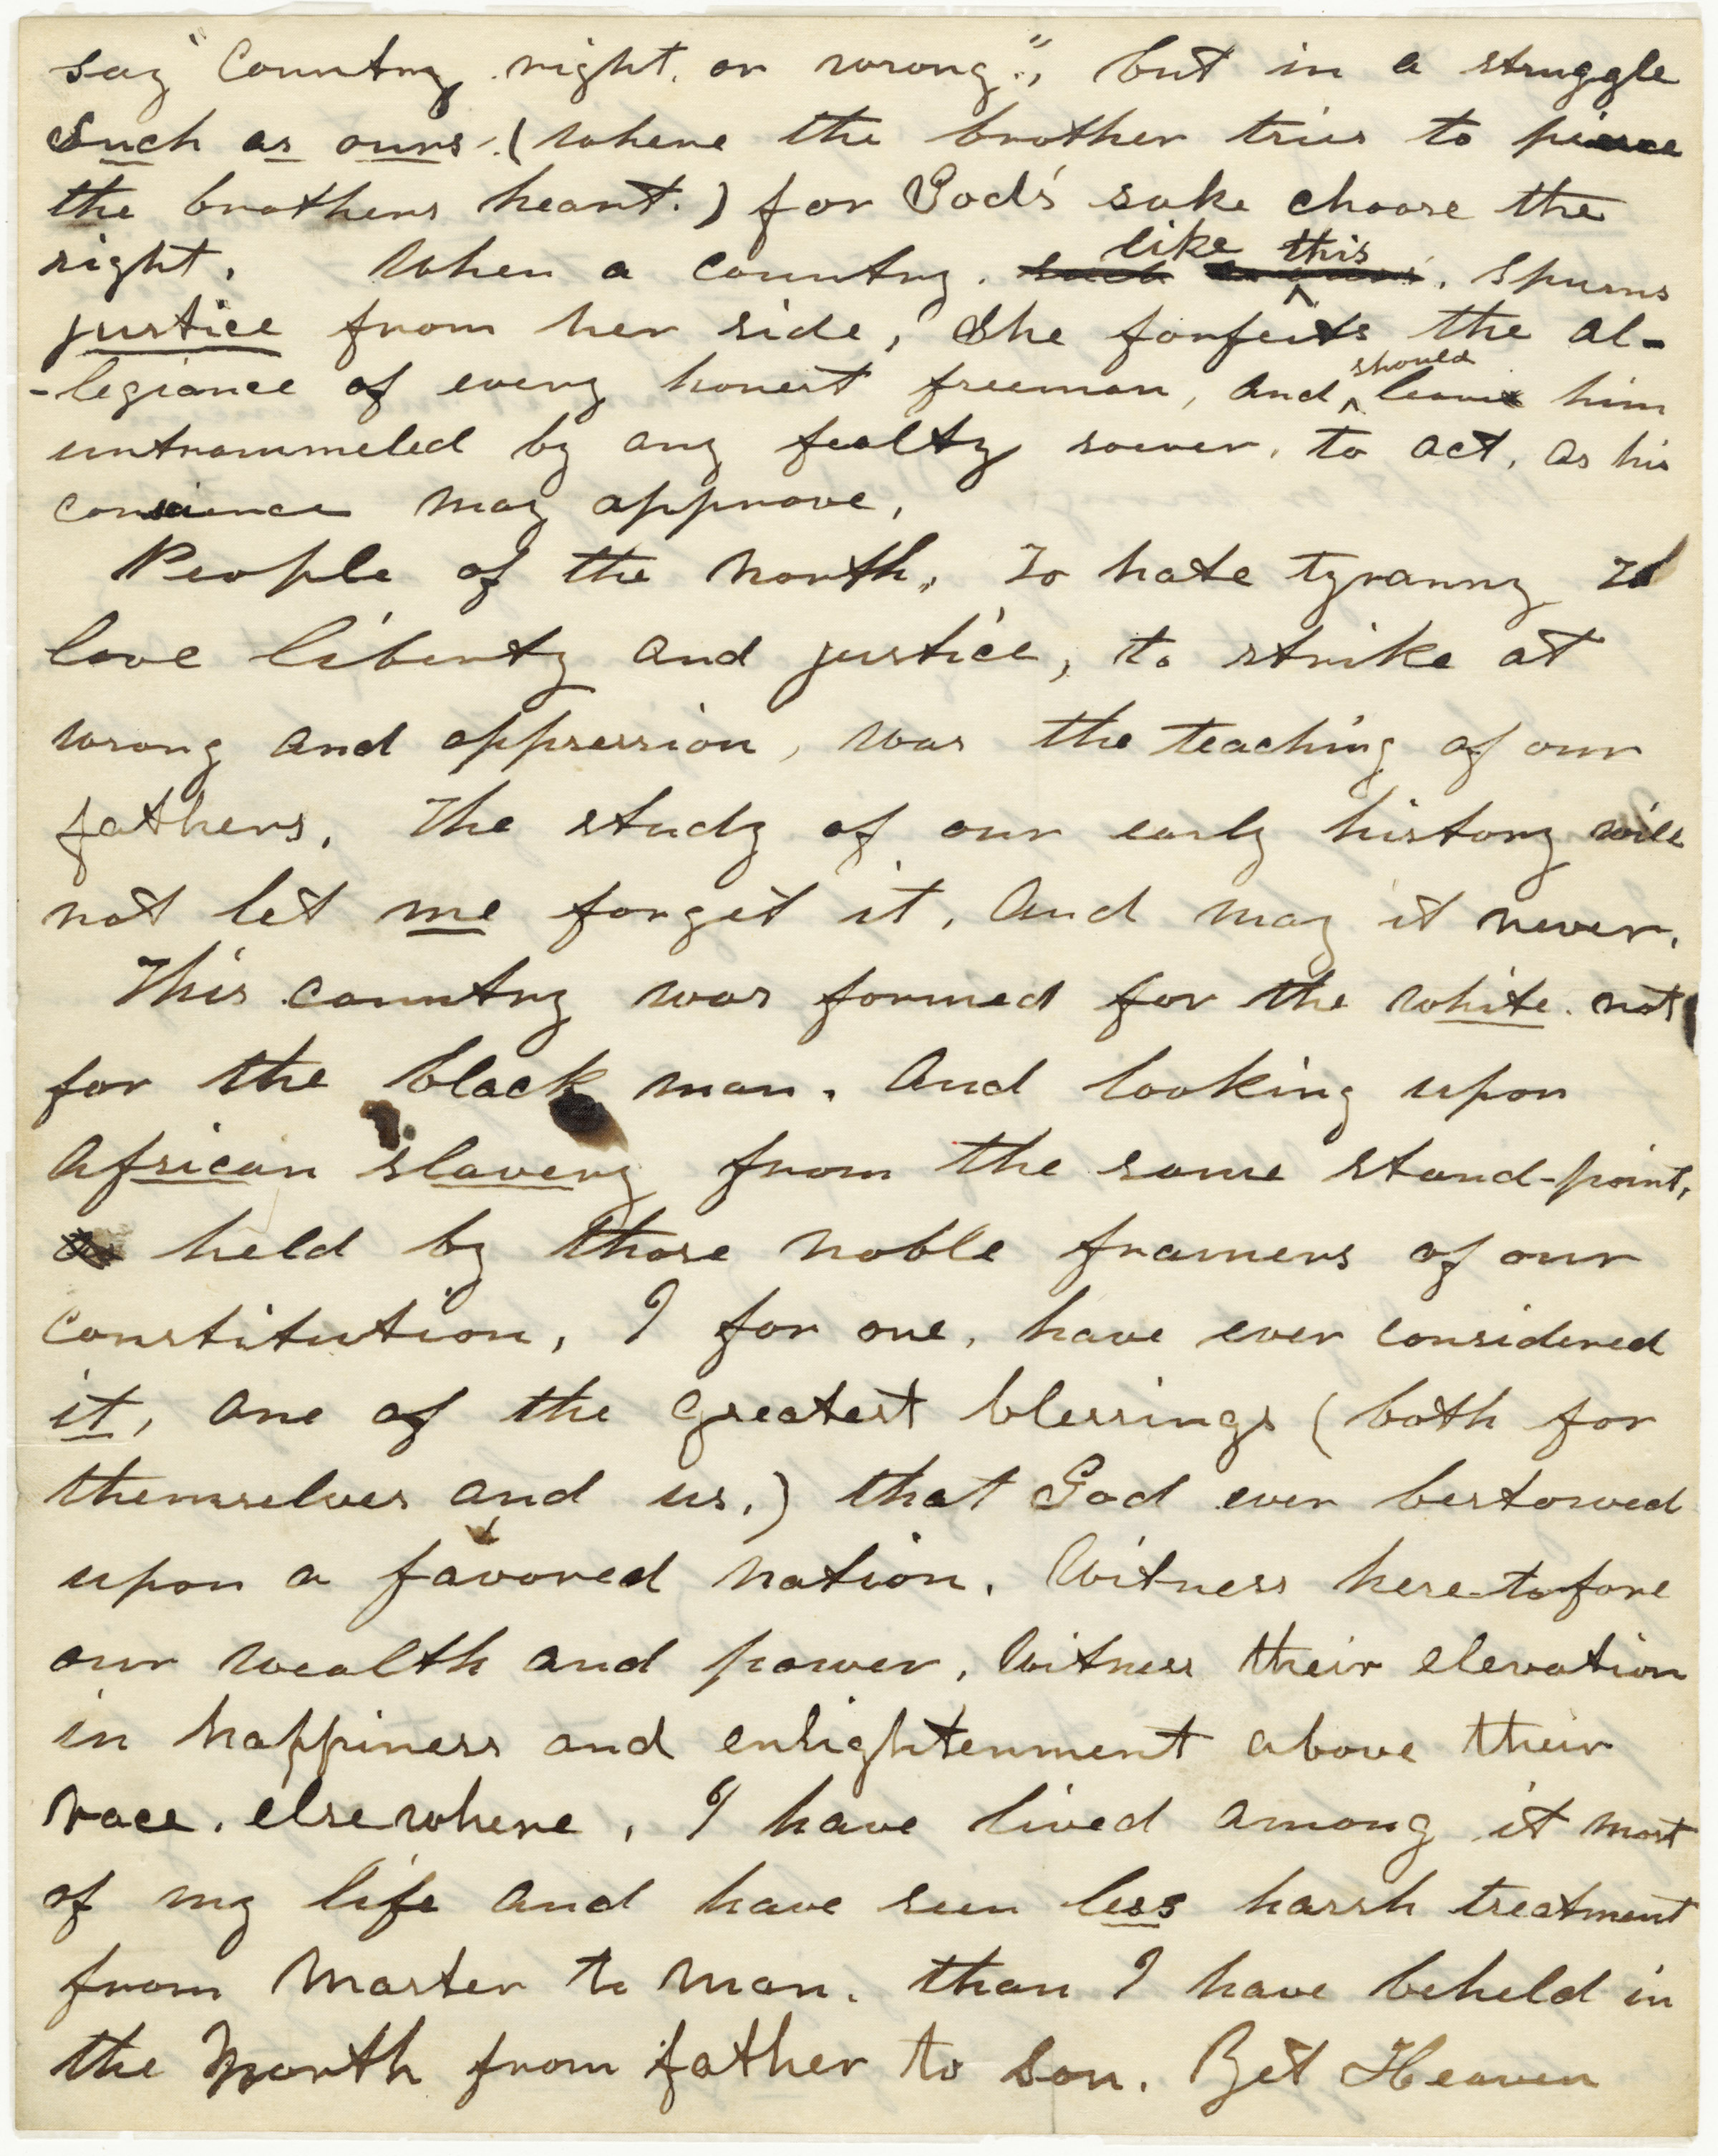 to whom it concern letter page 2 nara boothiebarn to whom it concern letter page 2 nara